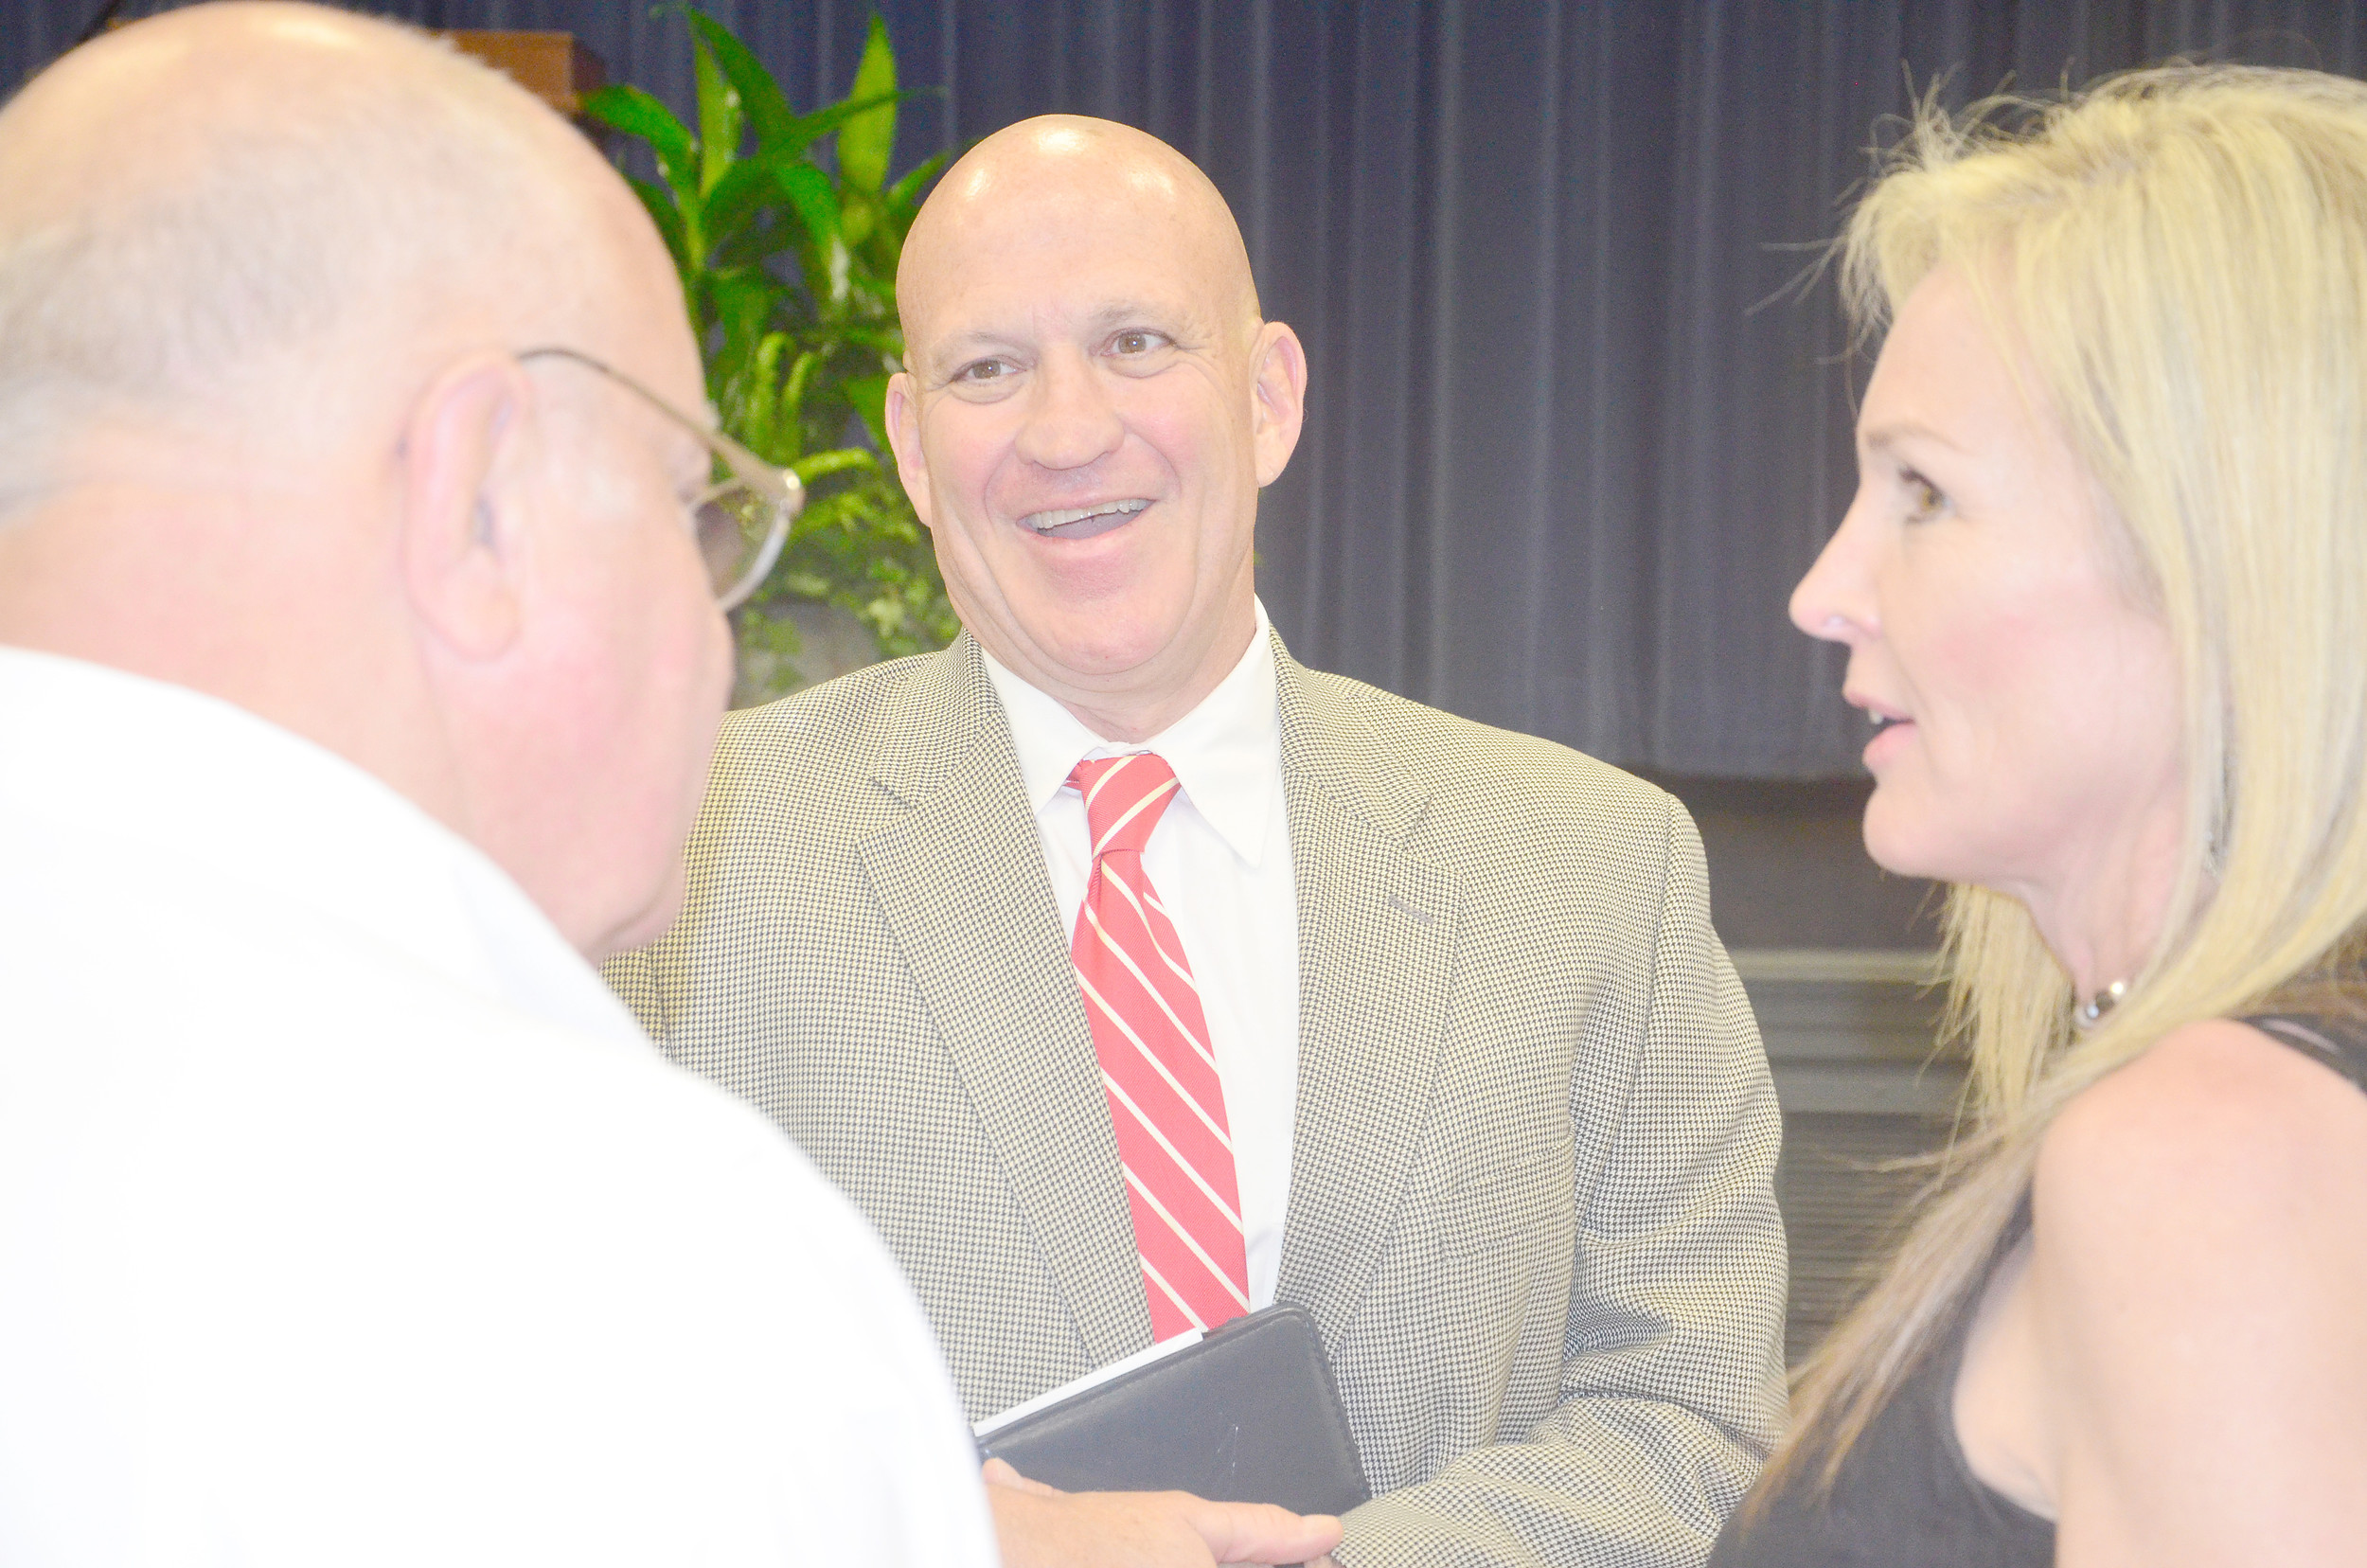 Charles L. Karr, dean of engineering at the University of Alabama, speaks to guests at Wednesday's Chamber of Walker County breakfast. Daily Mountain Eagle - James Phillips